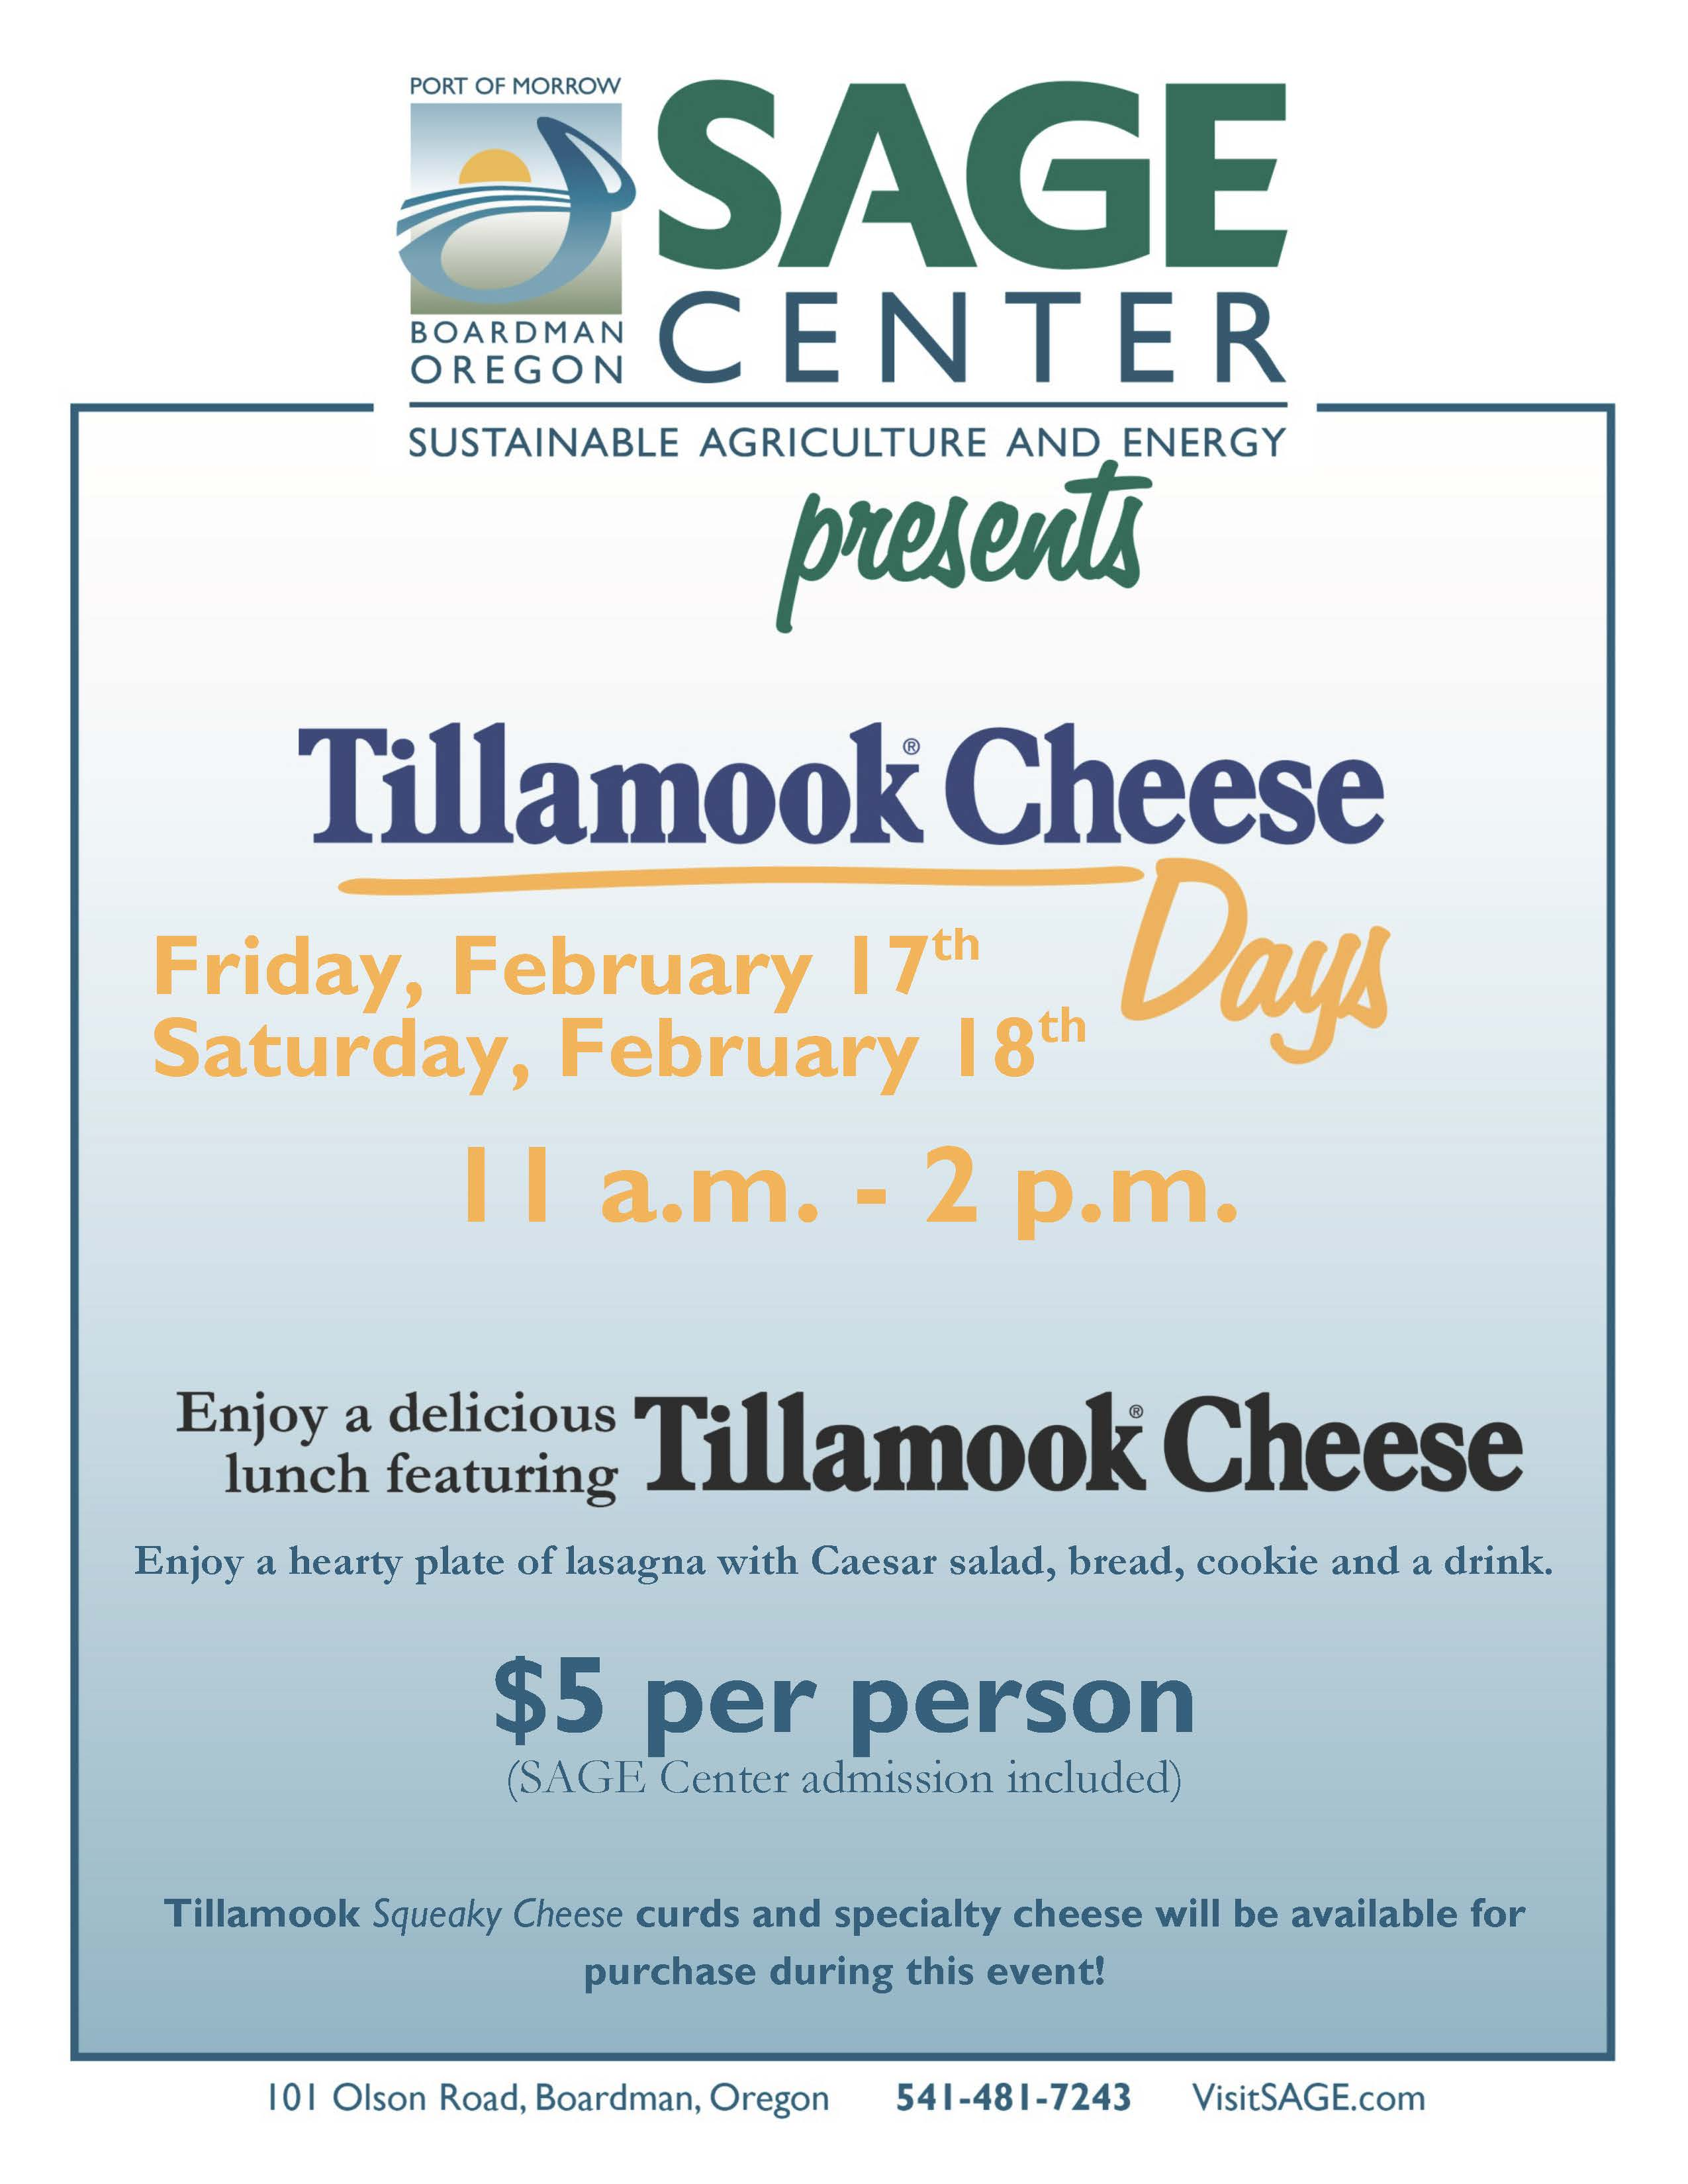 tillamook online dating Meet tillamook singles online & chat in the forums dhu is a 100% free dating site to find personals & casual encounters in tillamook.